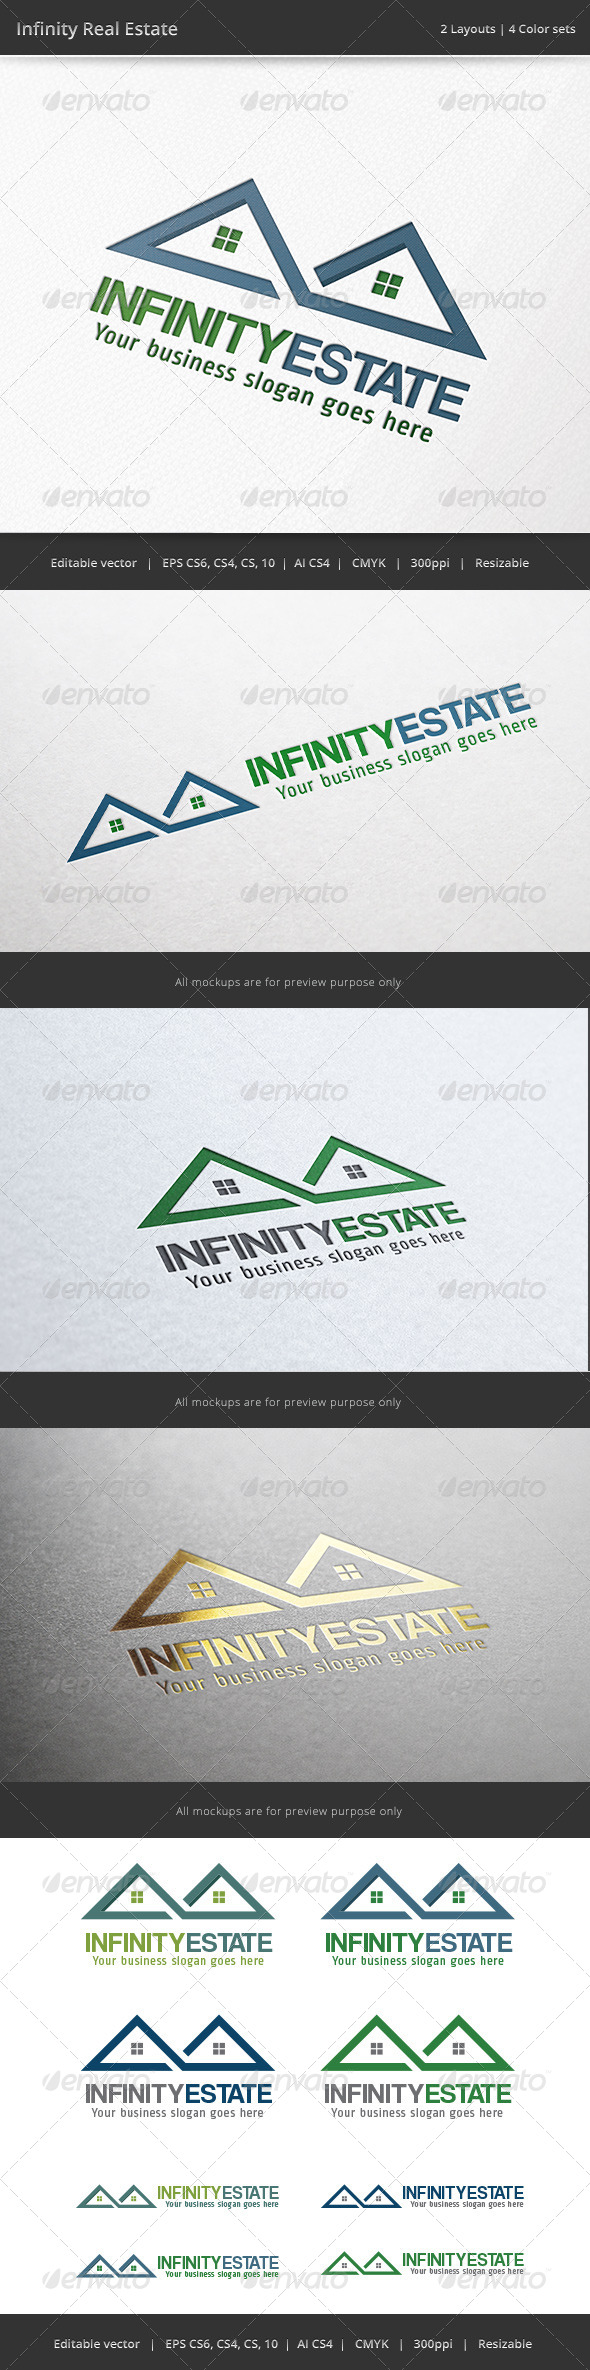 GraphicRiver Infinity Real Estate Logo 6882455